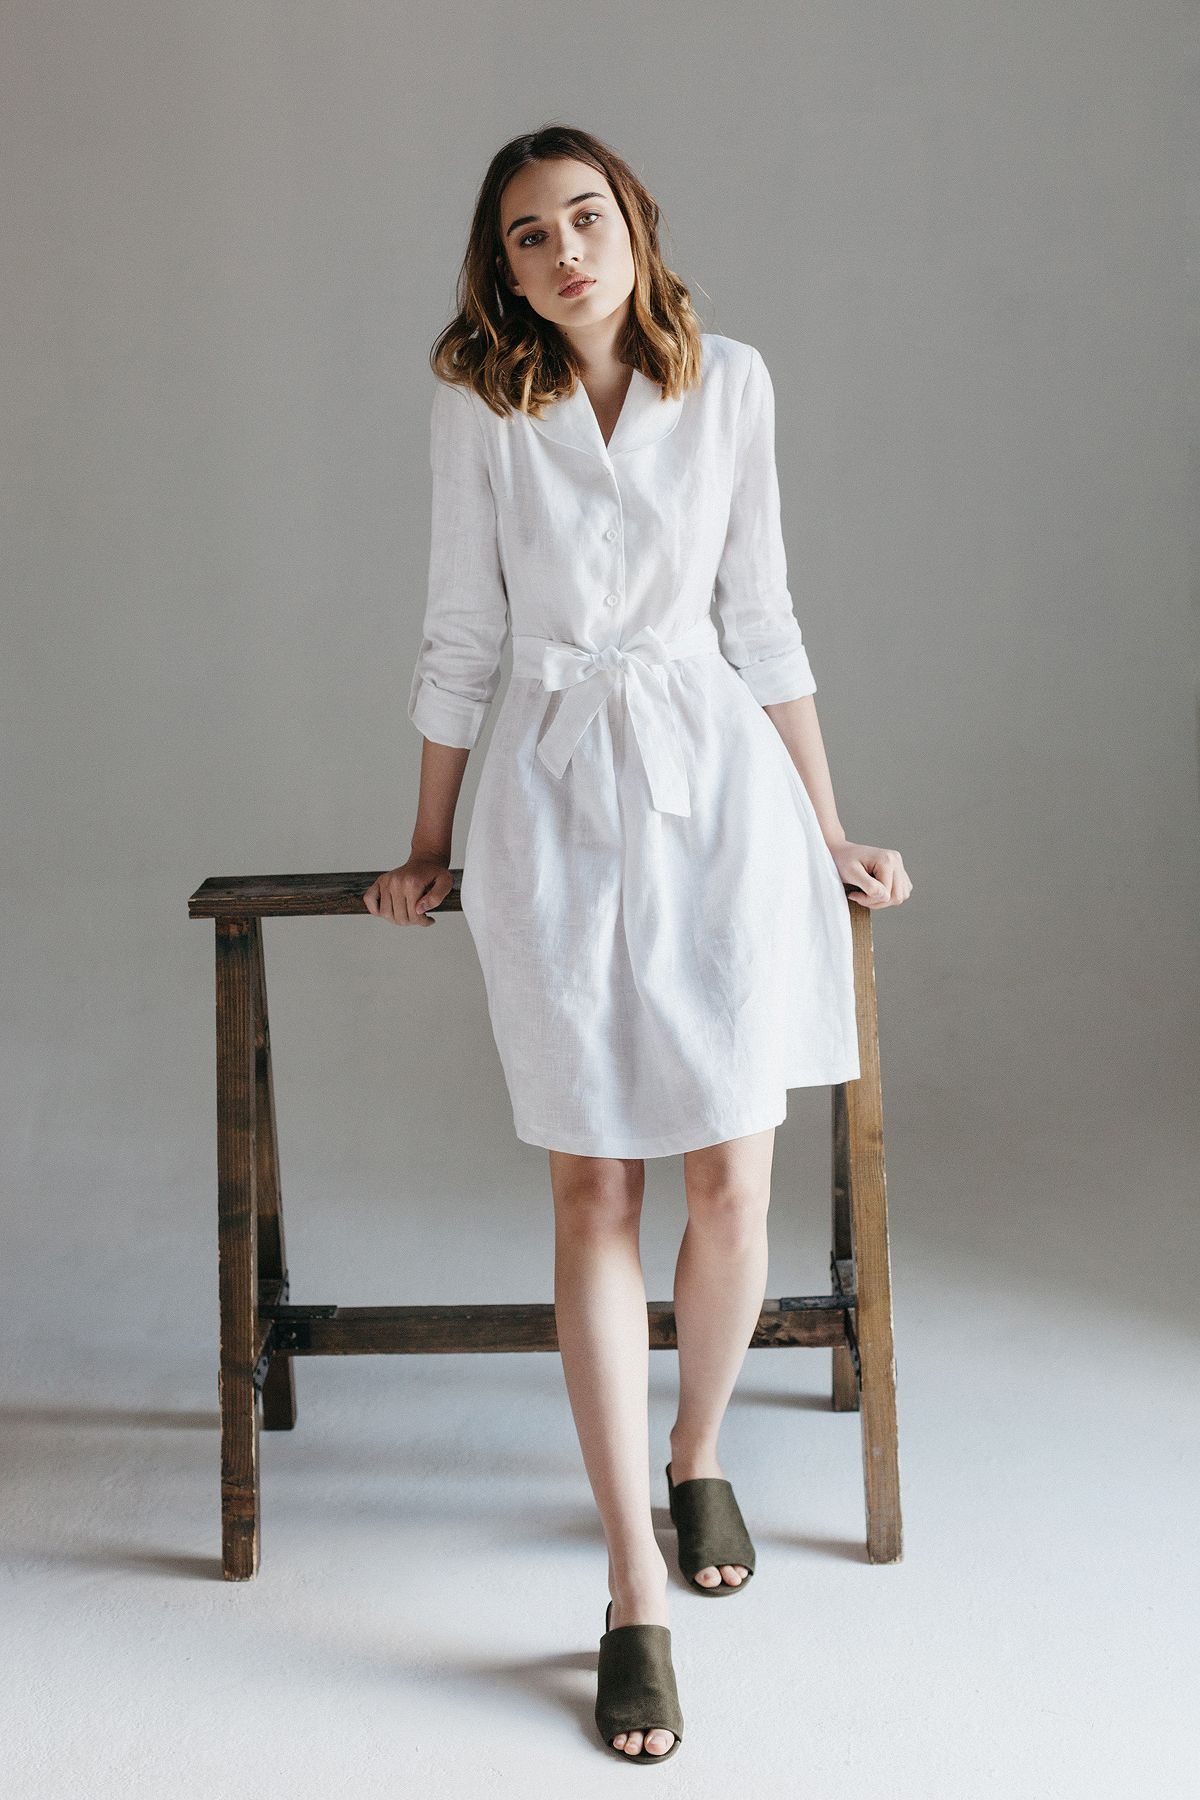 Sport Chic Summer Looks Linen Dresses Sewing Patterns Crafts To Make: Linen Summer Dresses For Weddings At Websimilar.org